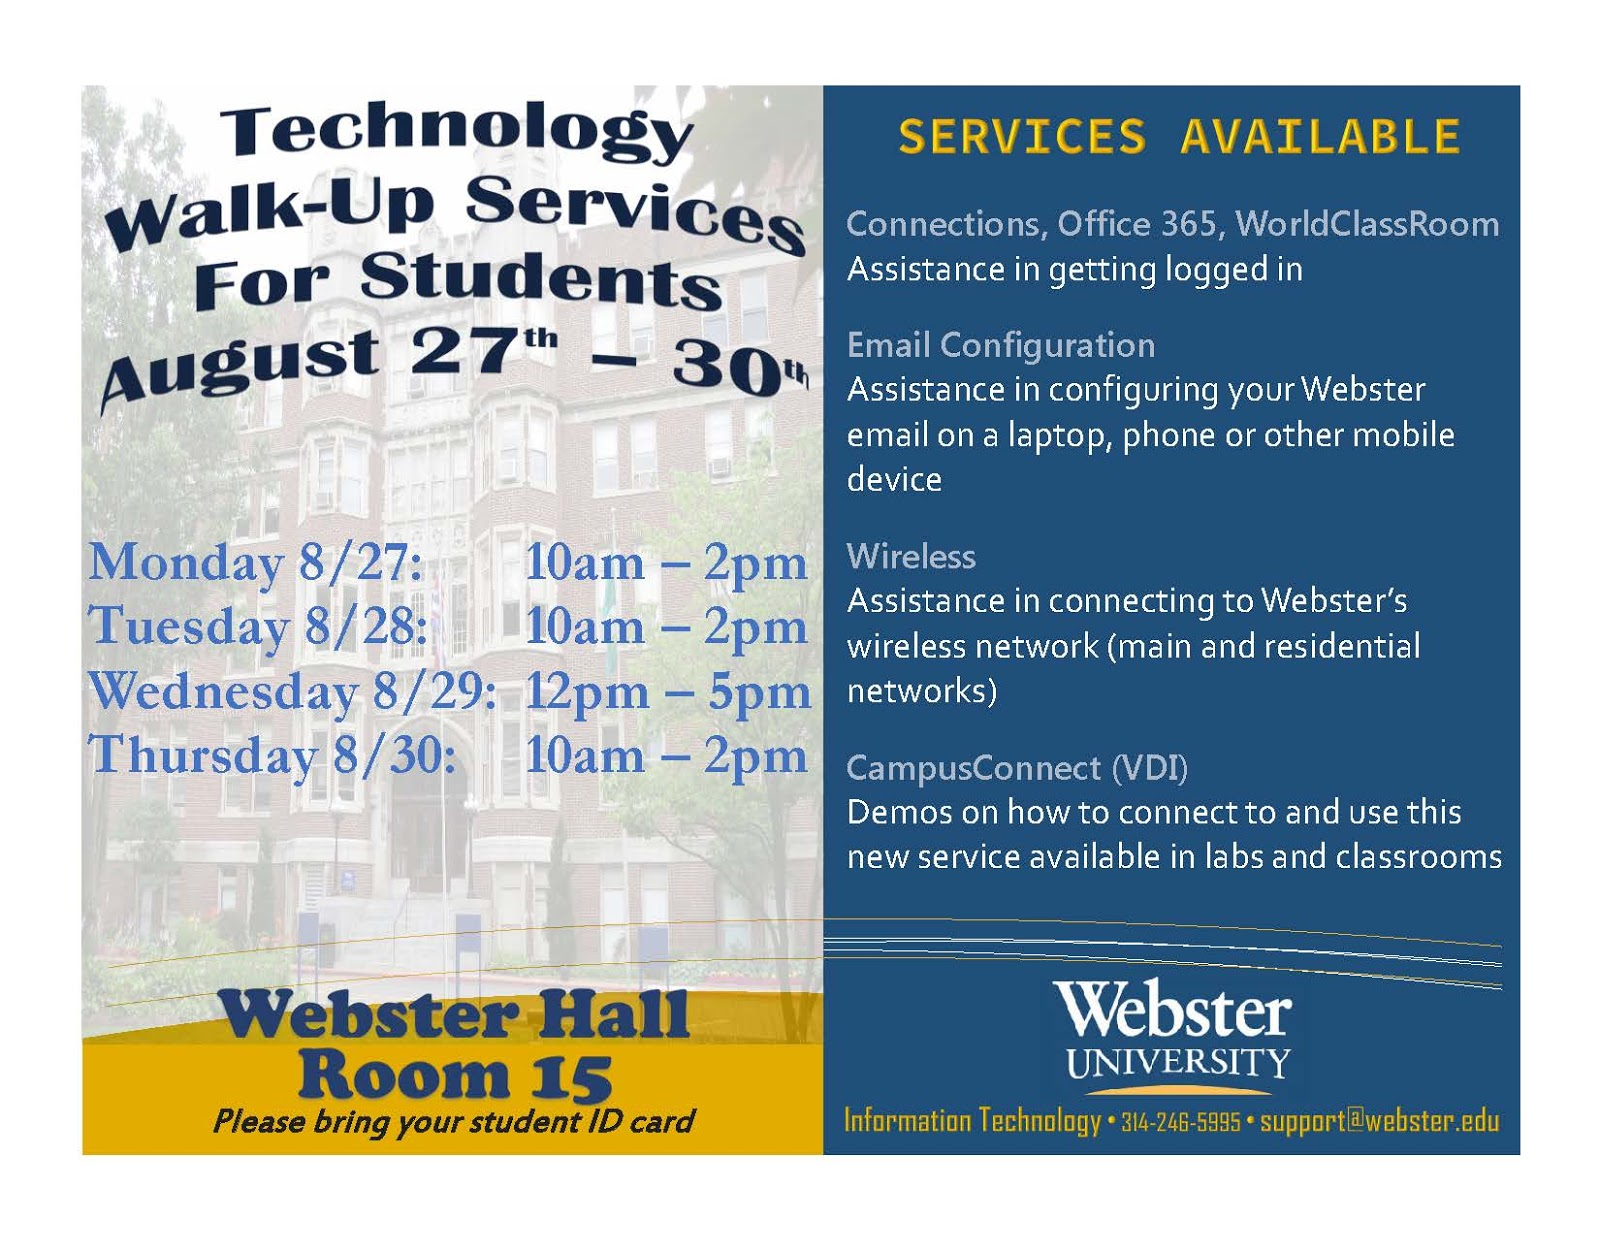 ... Information Technology will be offering technology walk-up services for  students on Monday – Thursday in Webster Hall Room 15 during the following  hours ...